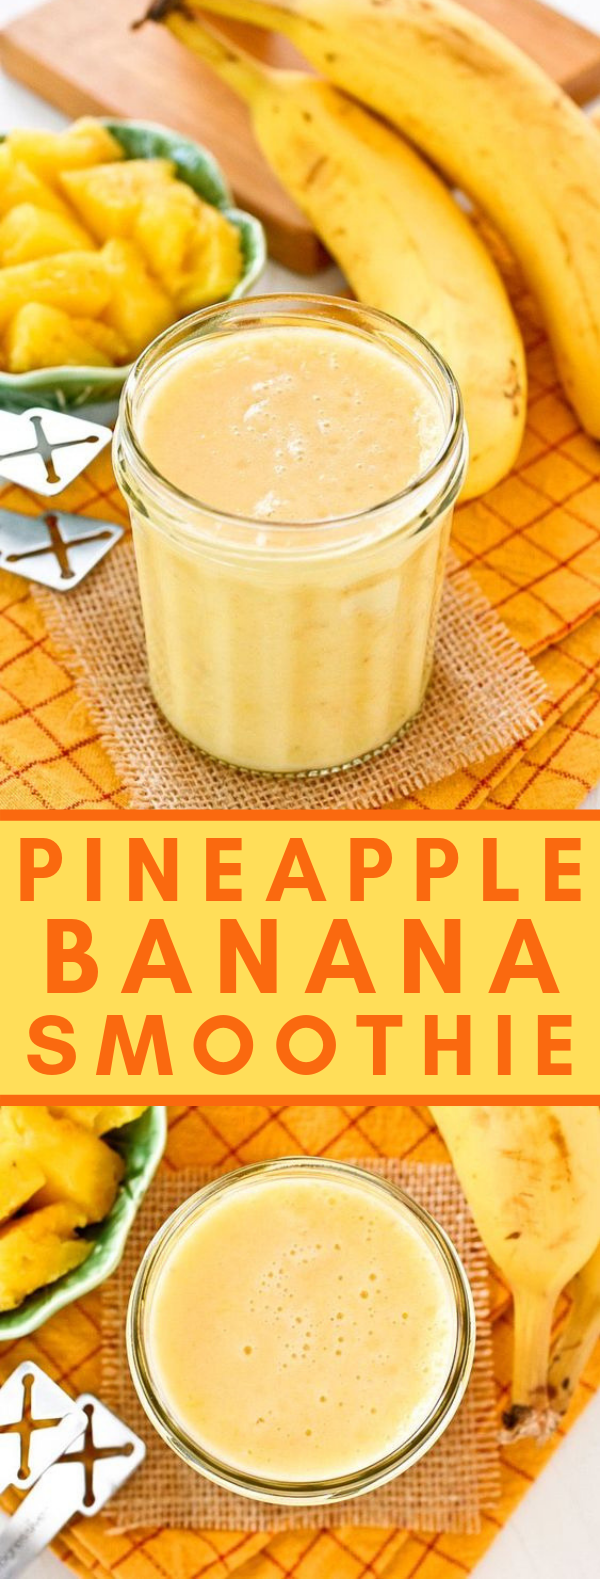 PINEAPPLE BANANA SMOOTHIE #drinks #healthydrink